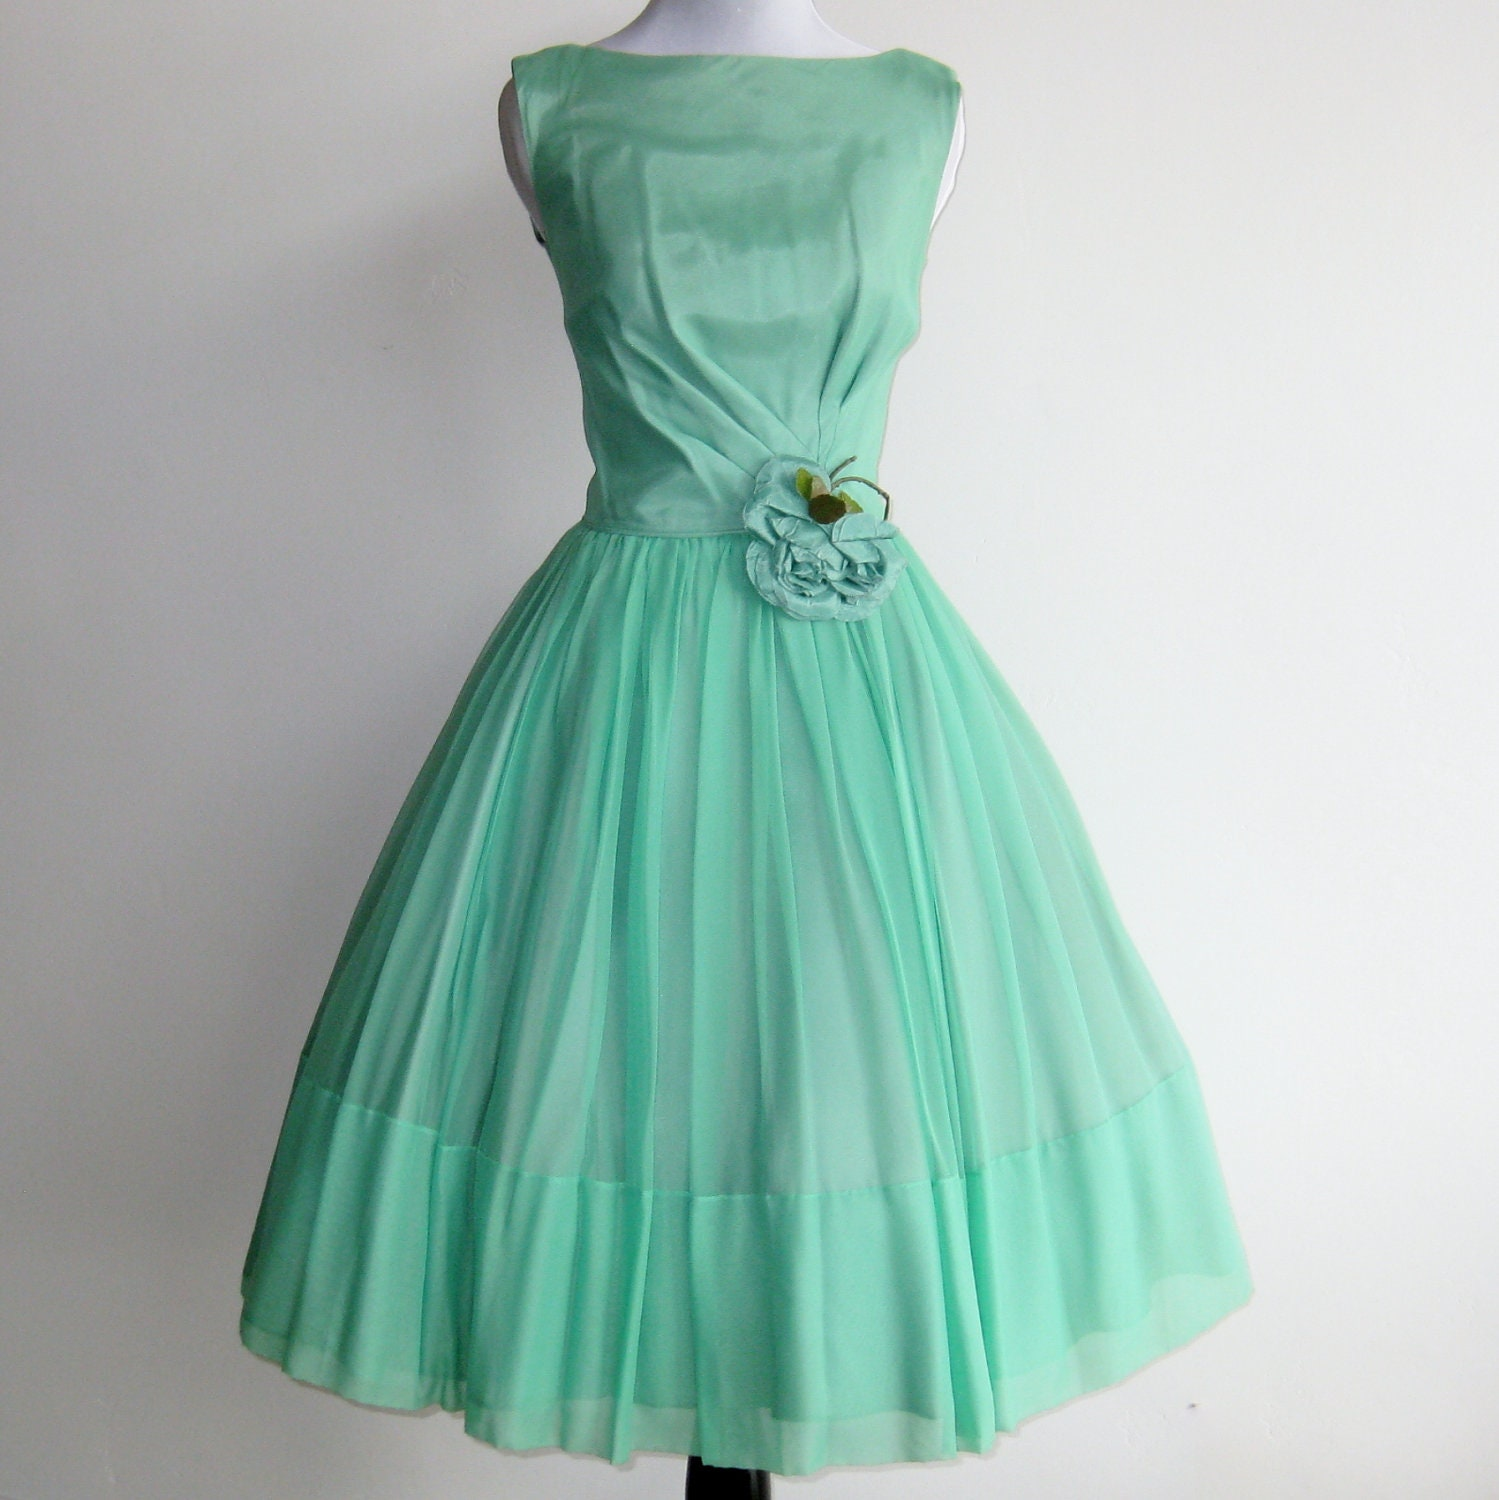 Vintage 50s Mint Green Chiffon Jr Theme Full Skirt Formal